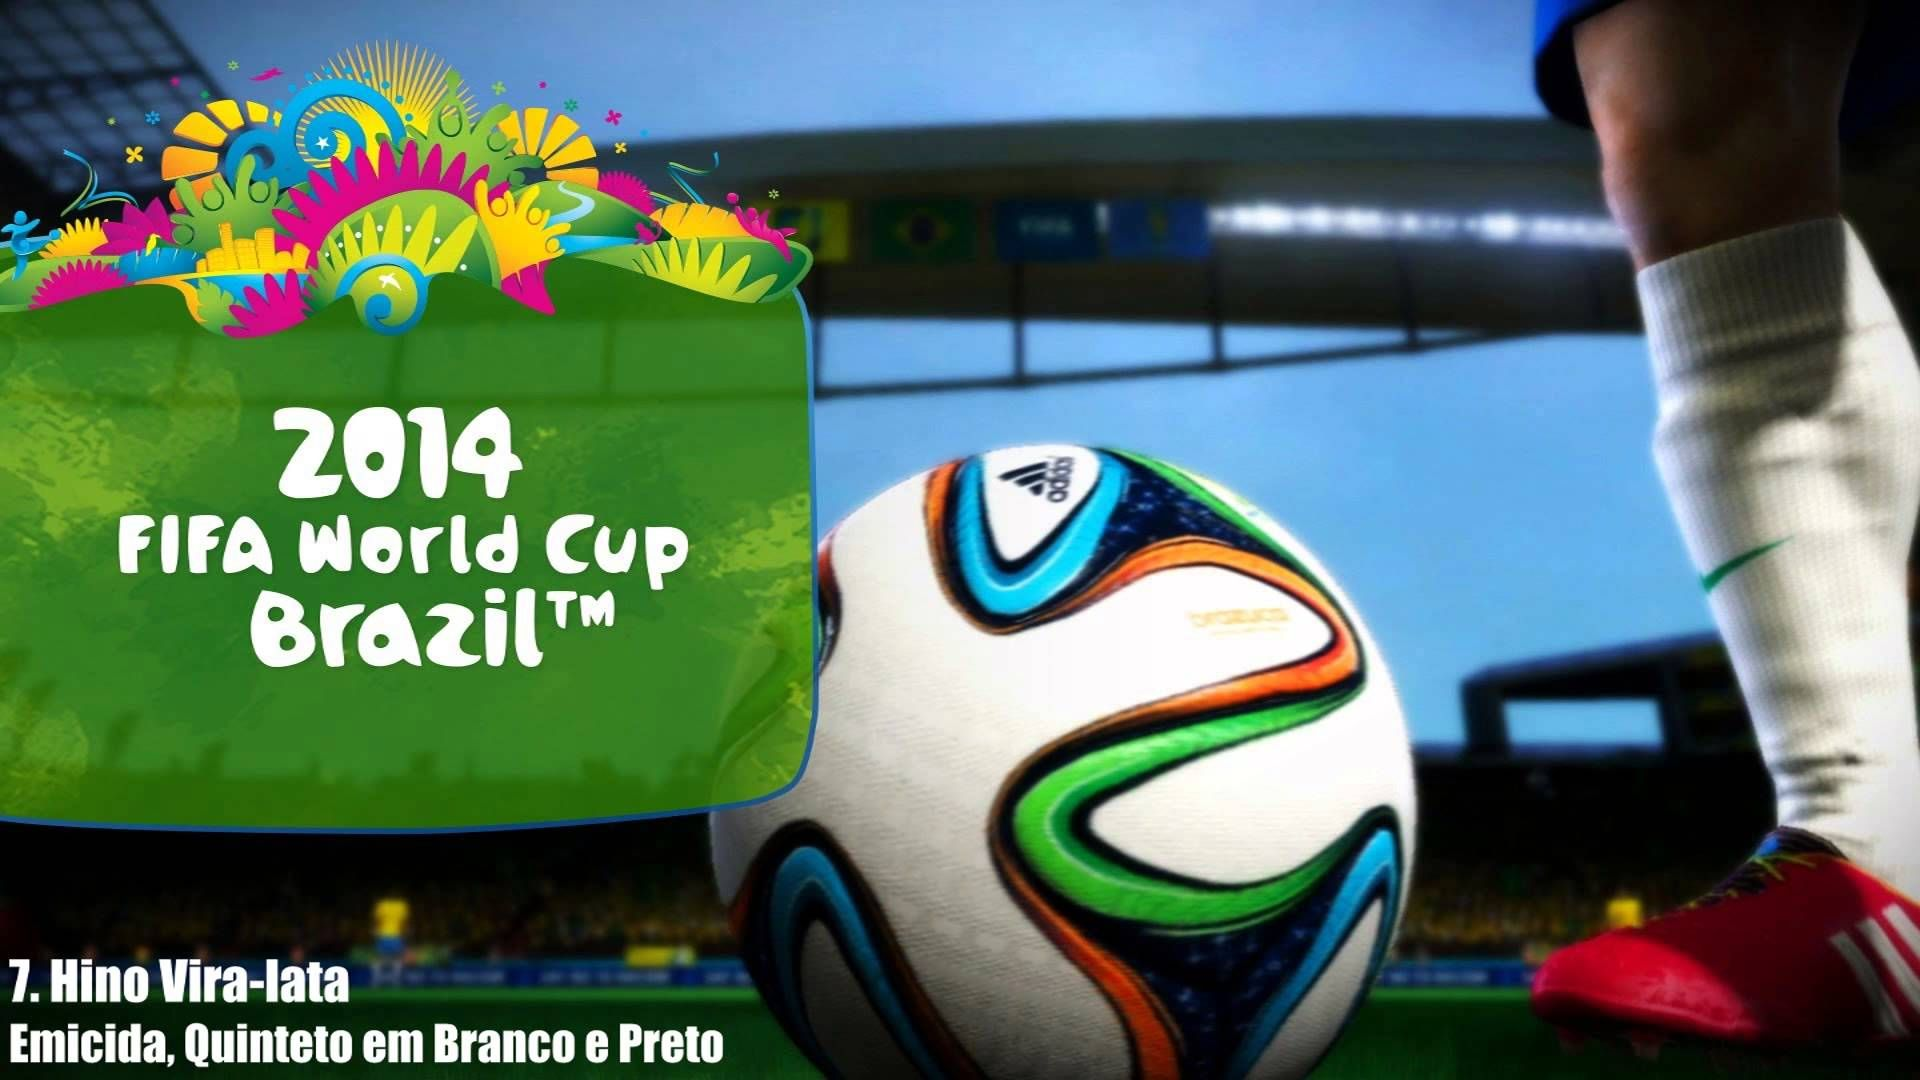 Pin On 2014 Fifa World Cup Brazil